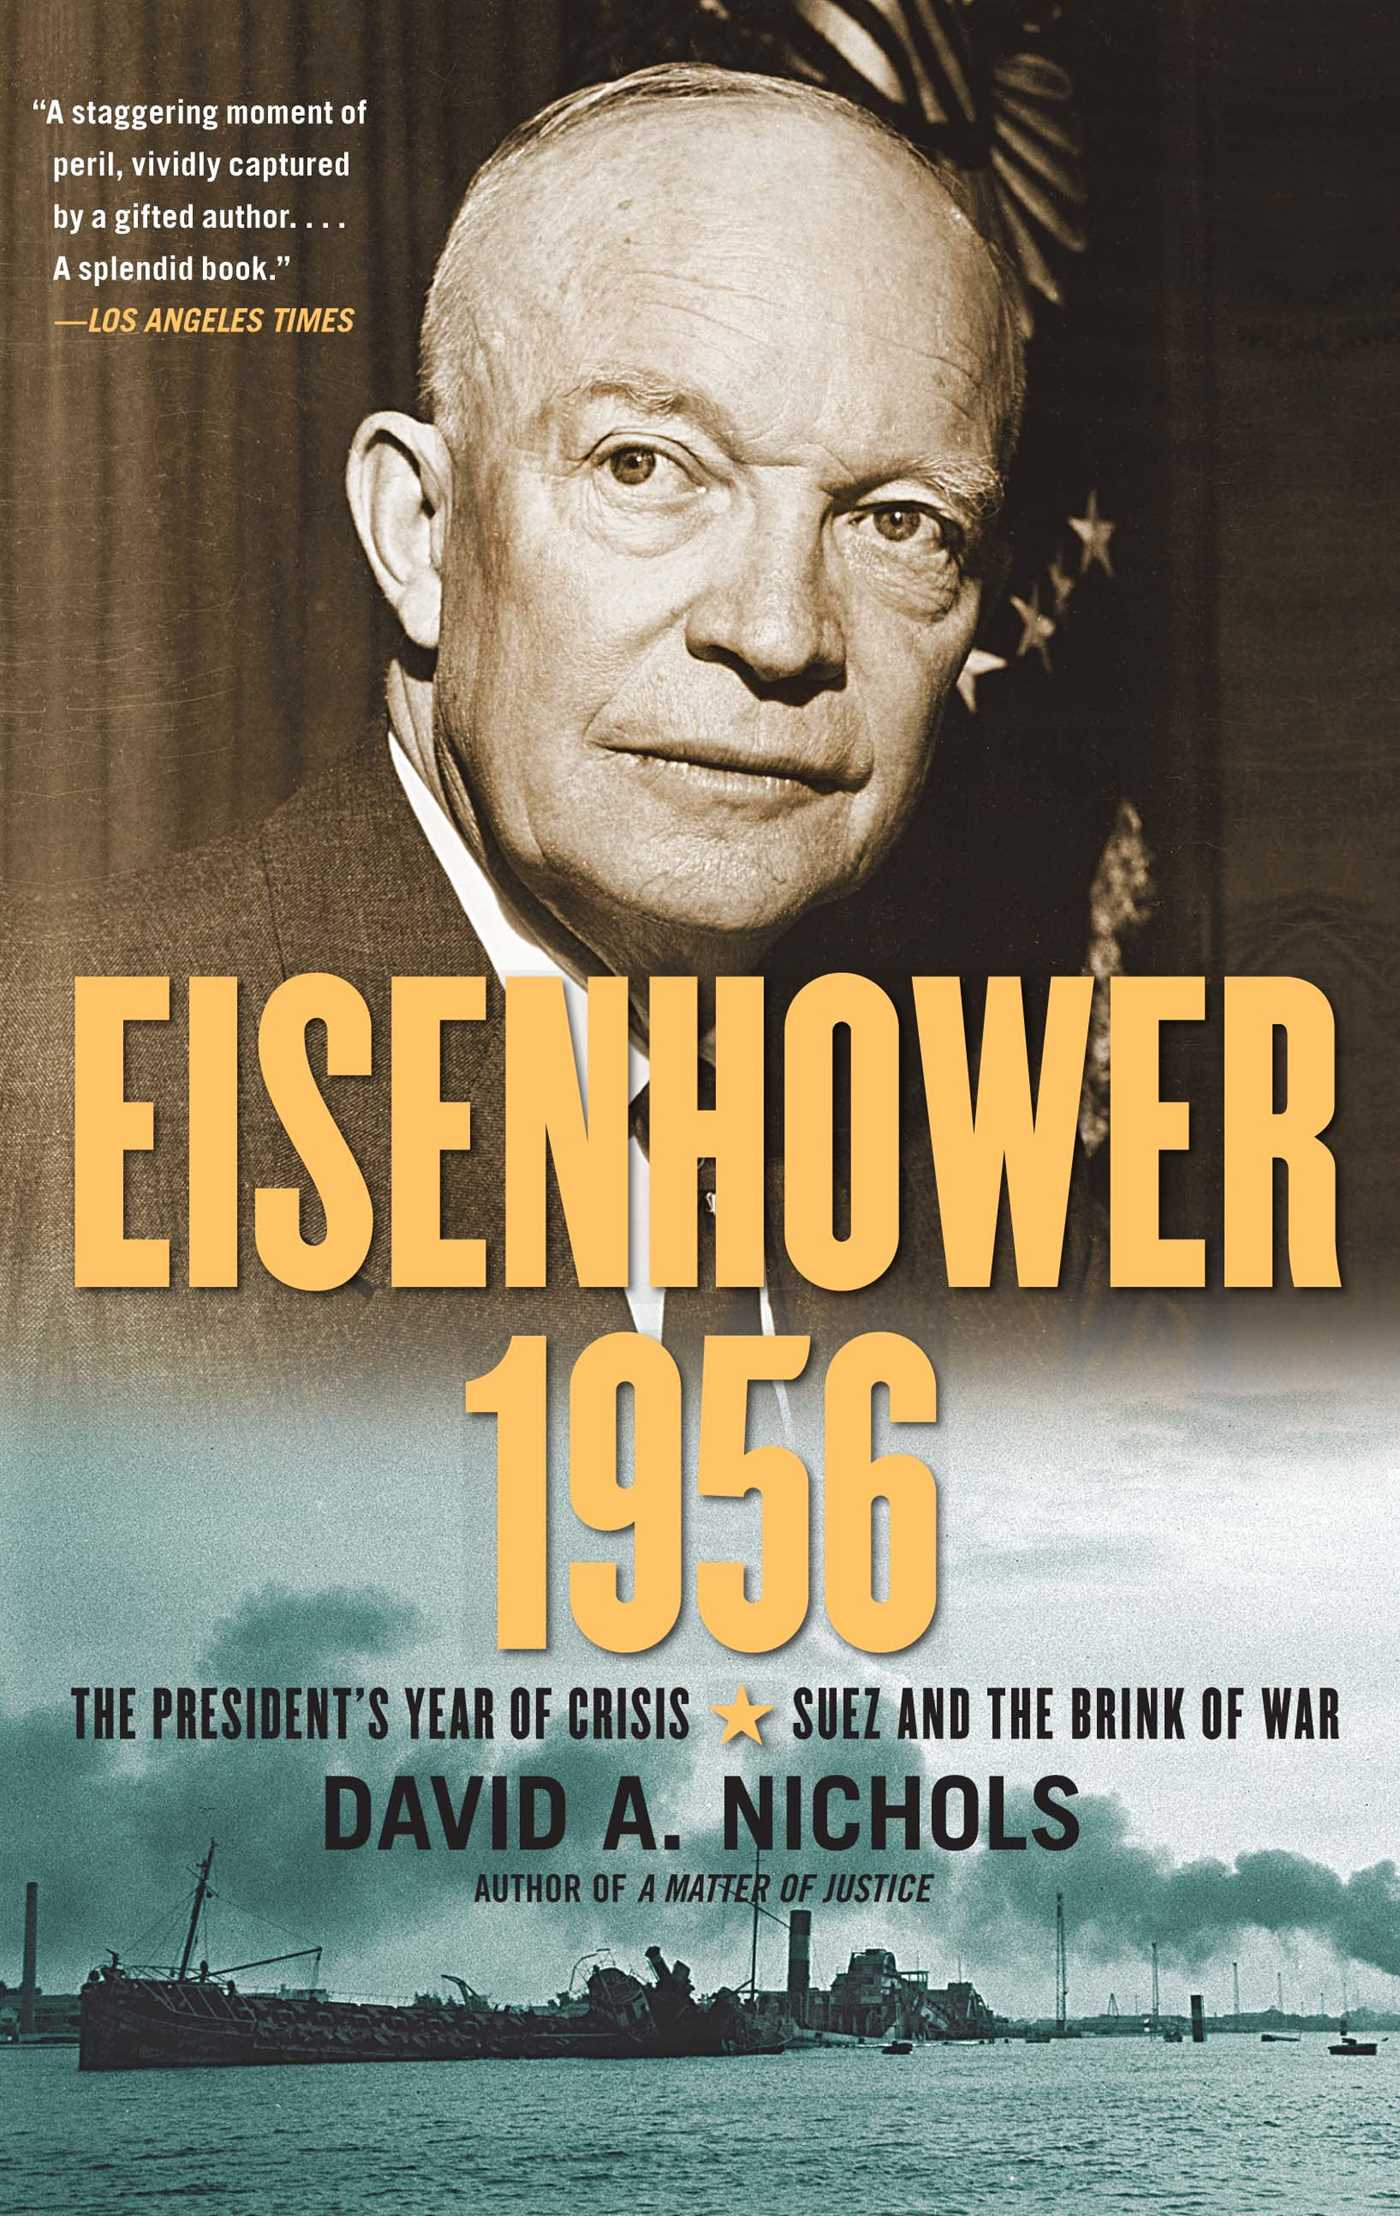 cold war eisenhower He also criticized the eisenhower administration for permitting the establishment of a pro-soviet government in cuba the cold war and the nuclear arms race with the soviet union were vital international issues throughout his political career.